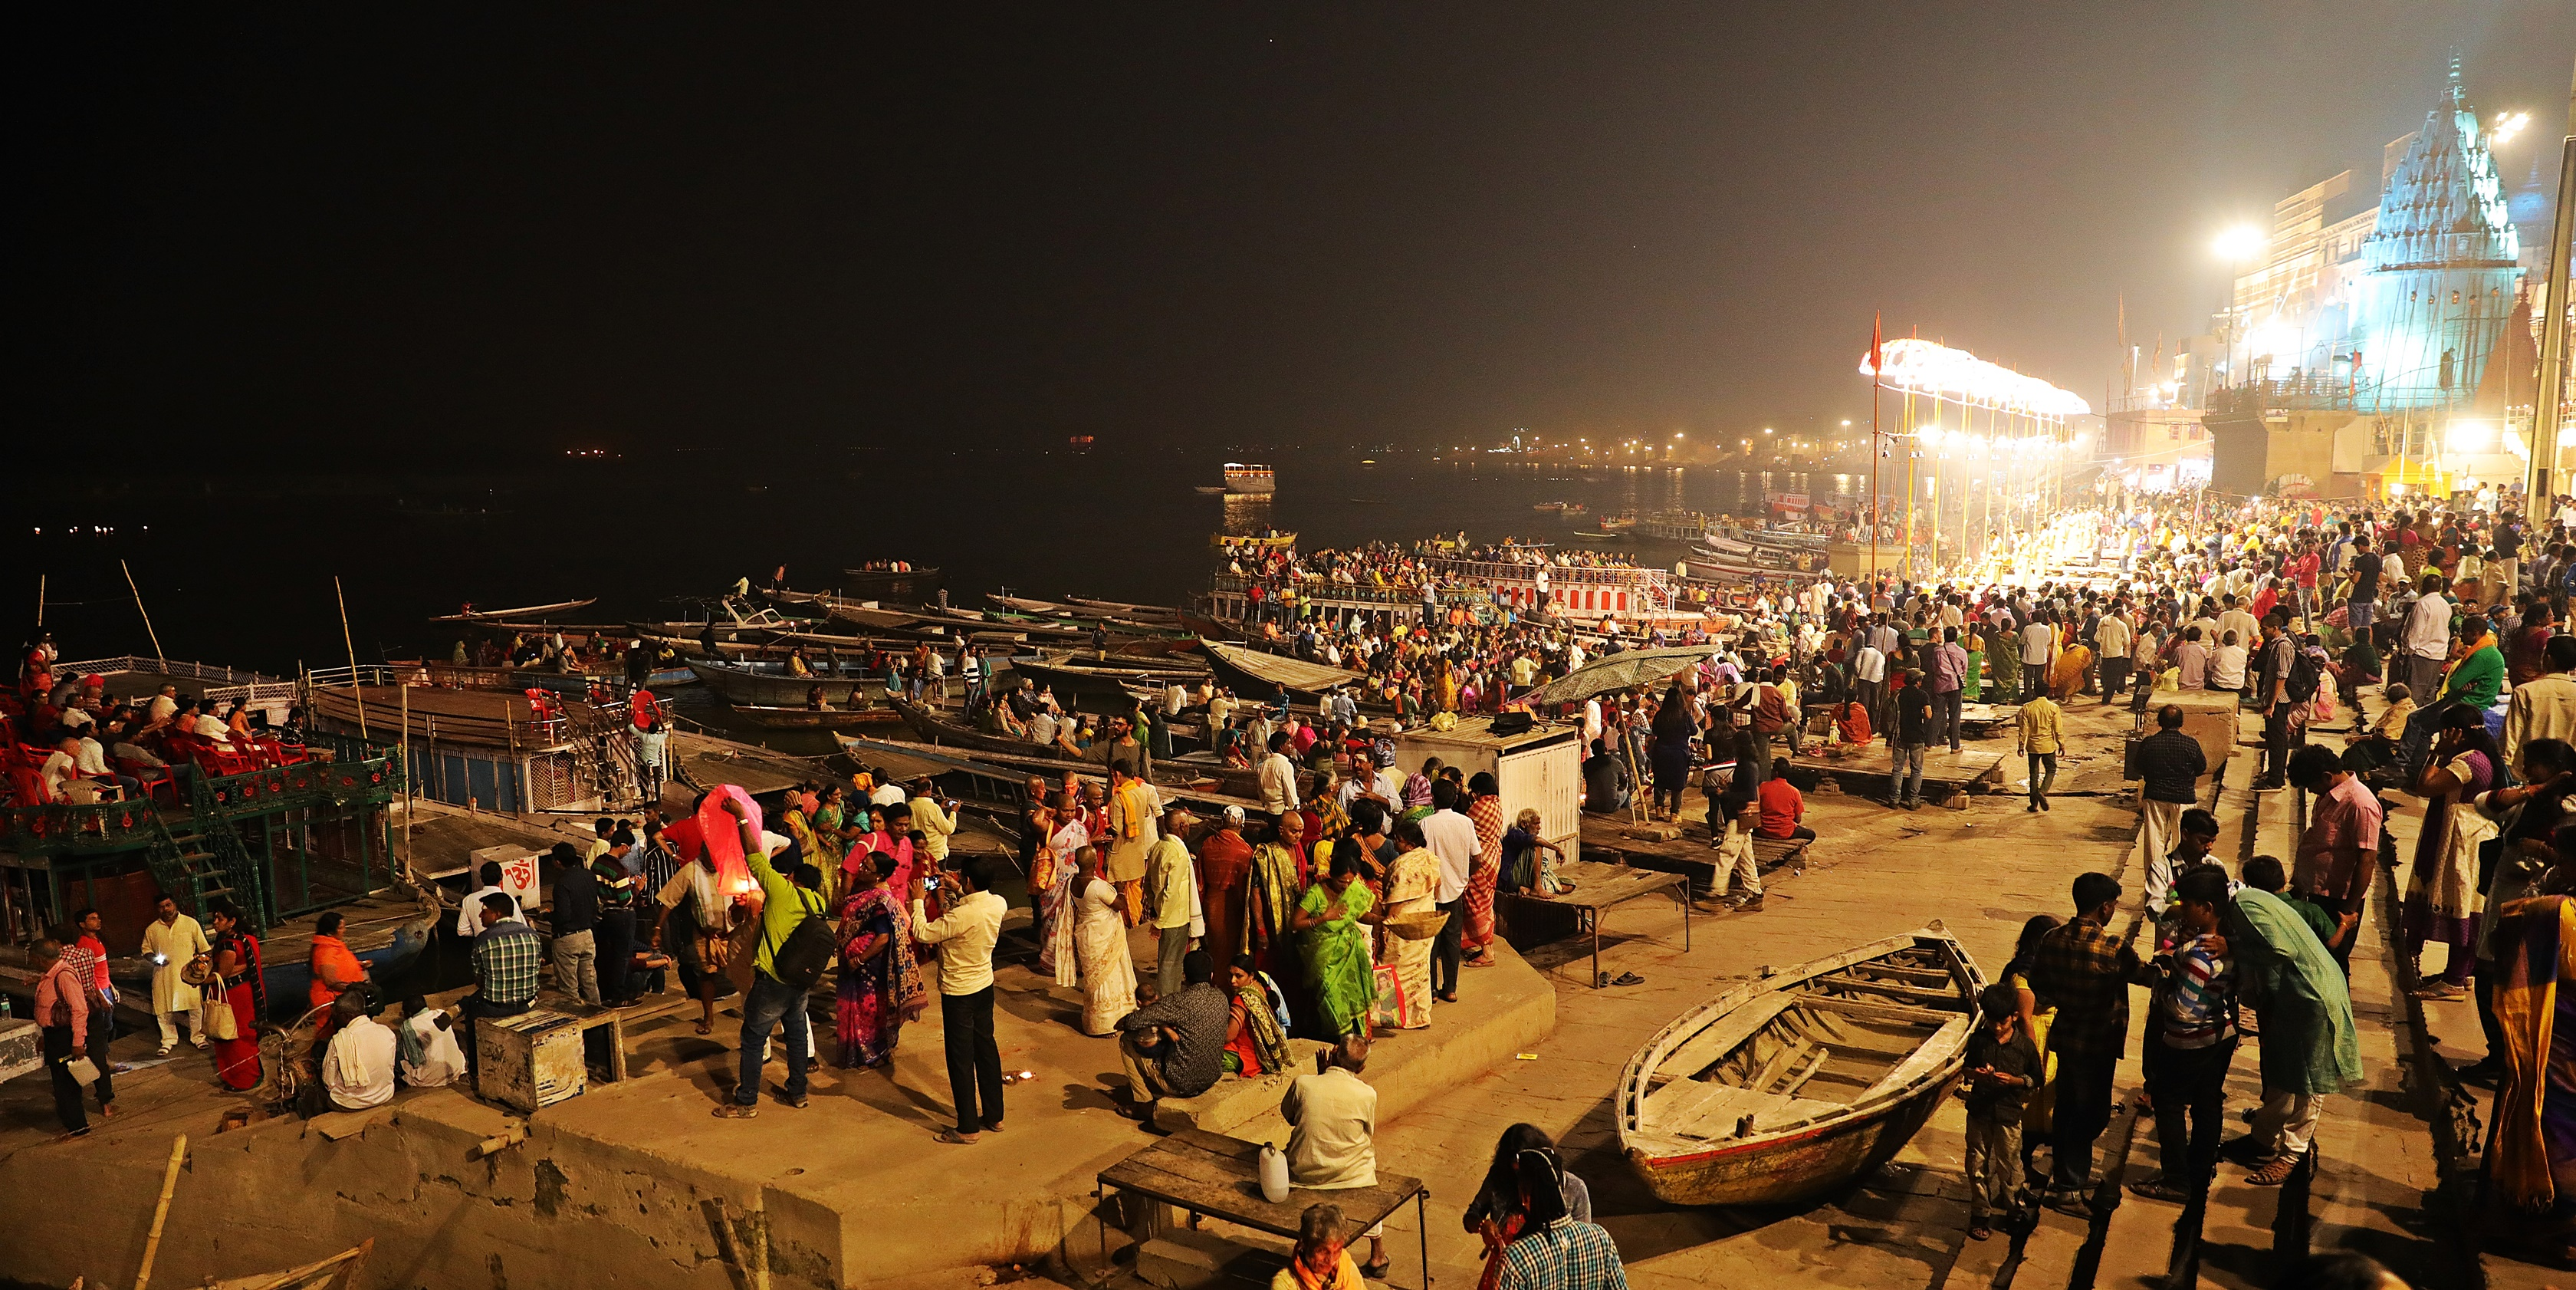 Spectators for Ganga Aarti, Varanasi